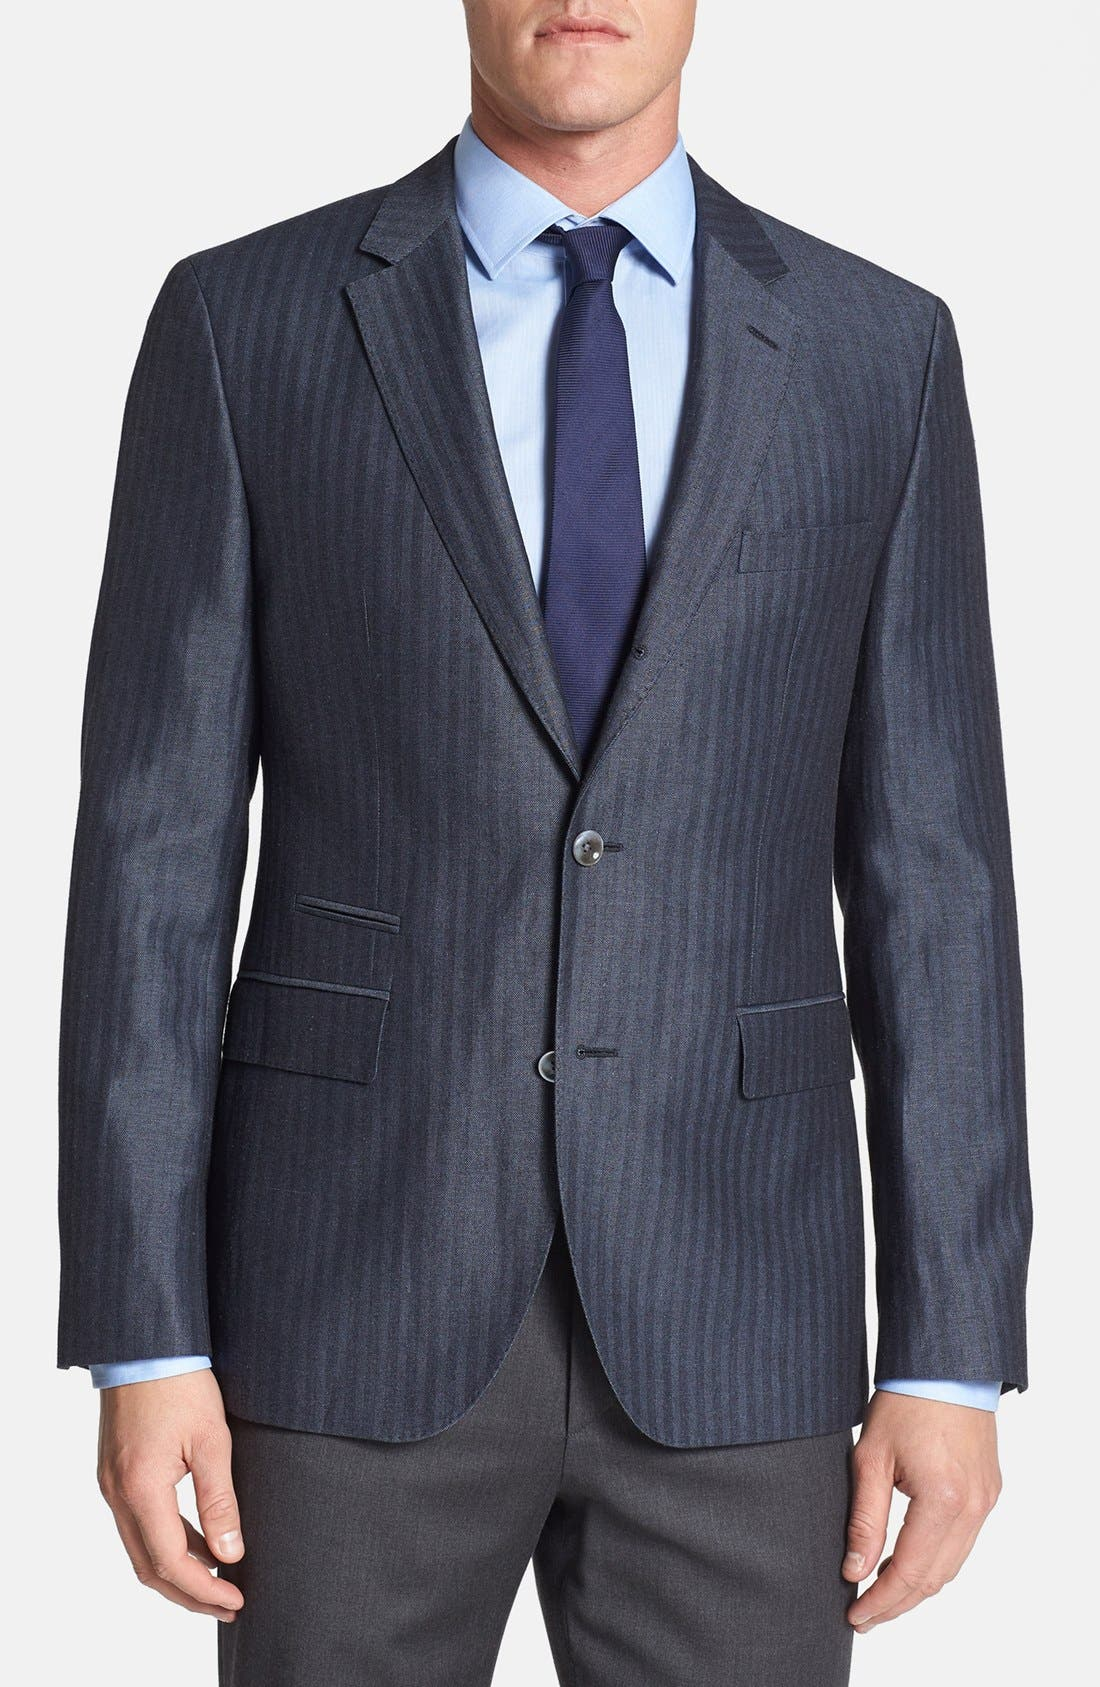 Main Image - BOSS HUGO BOSS 'Johnston' Trim Fit Herringbone Sportcoat